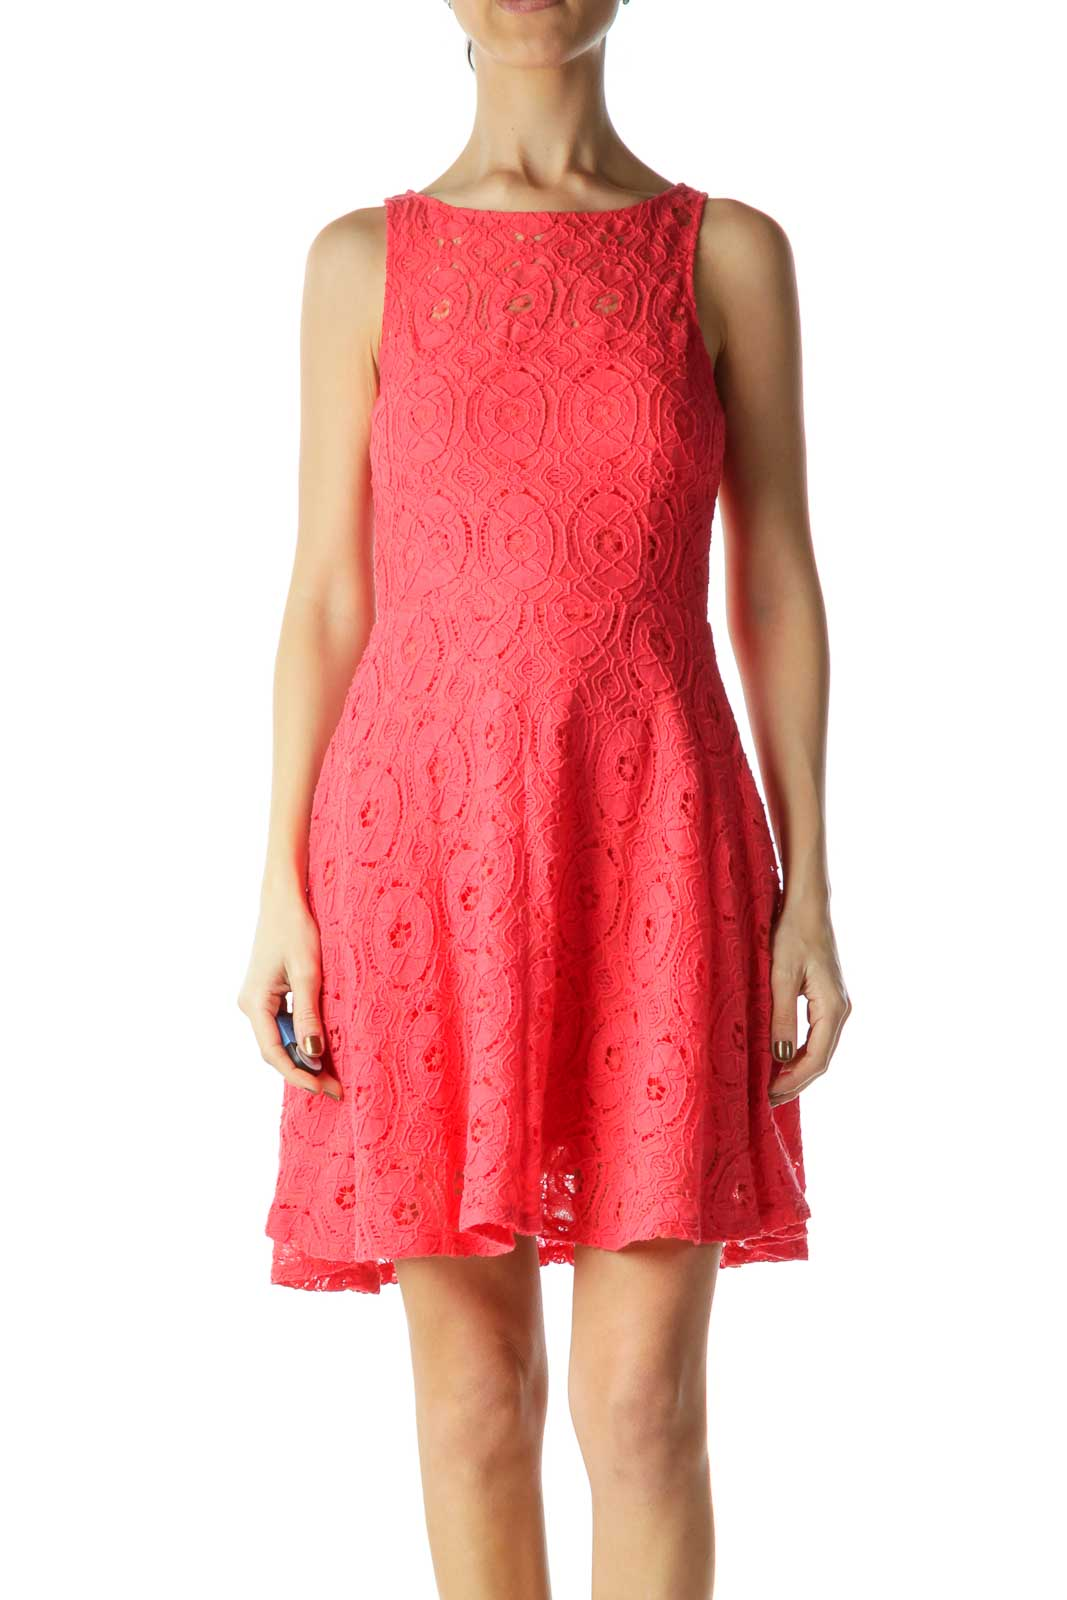 Pink Lace A-line Day Dress Front